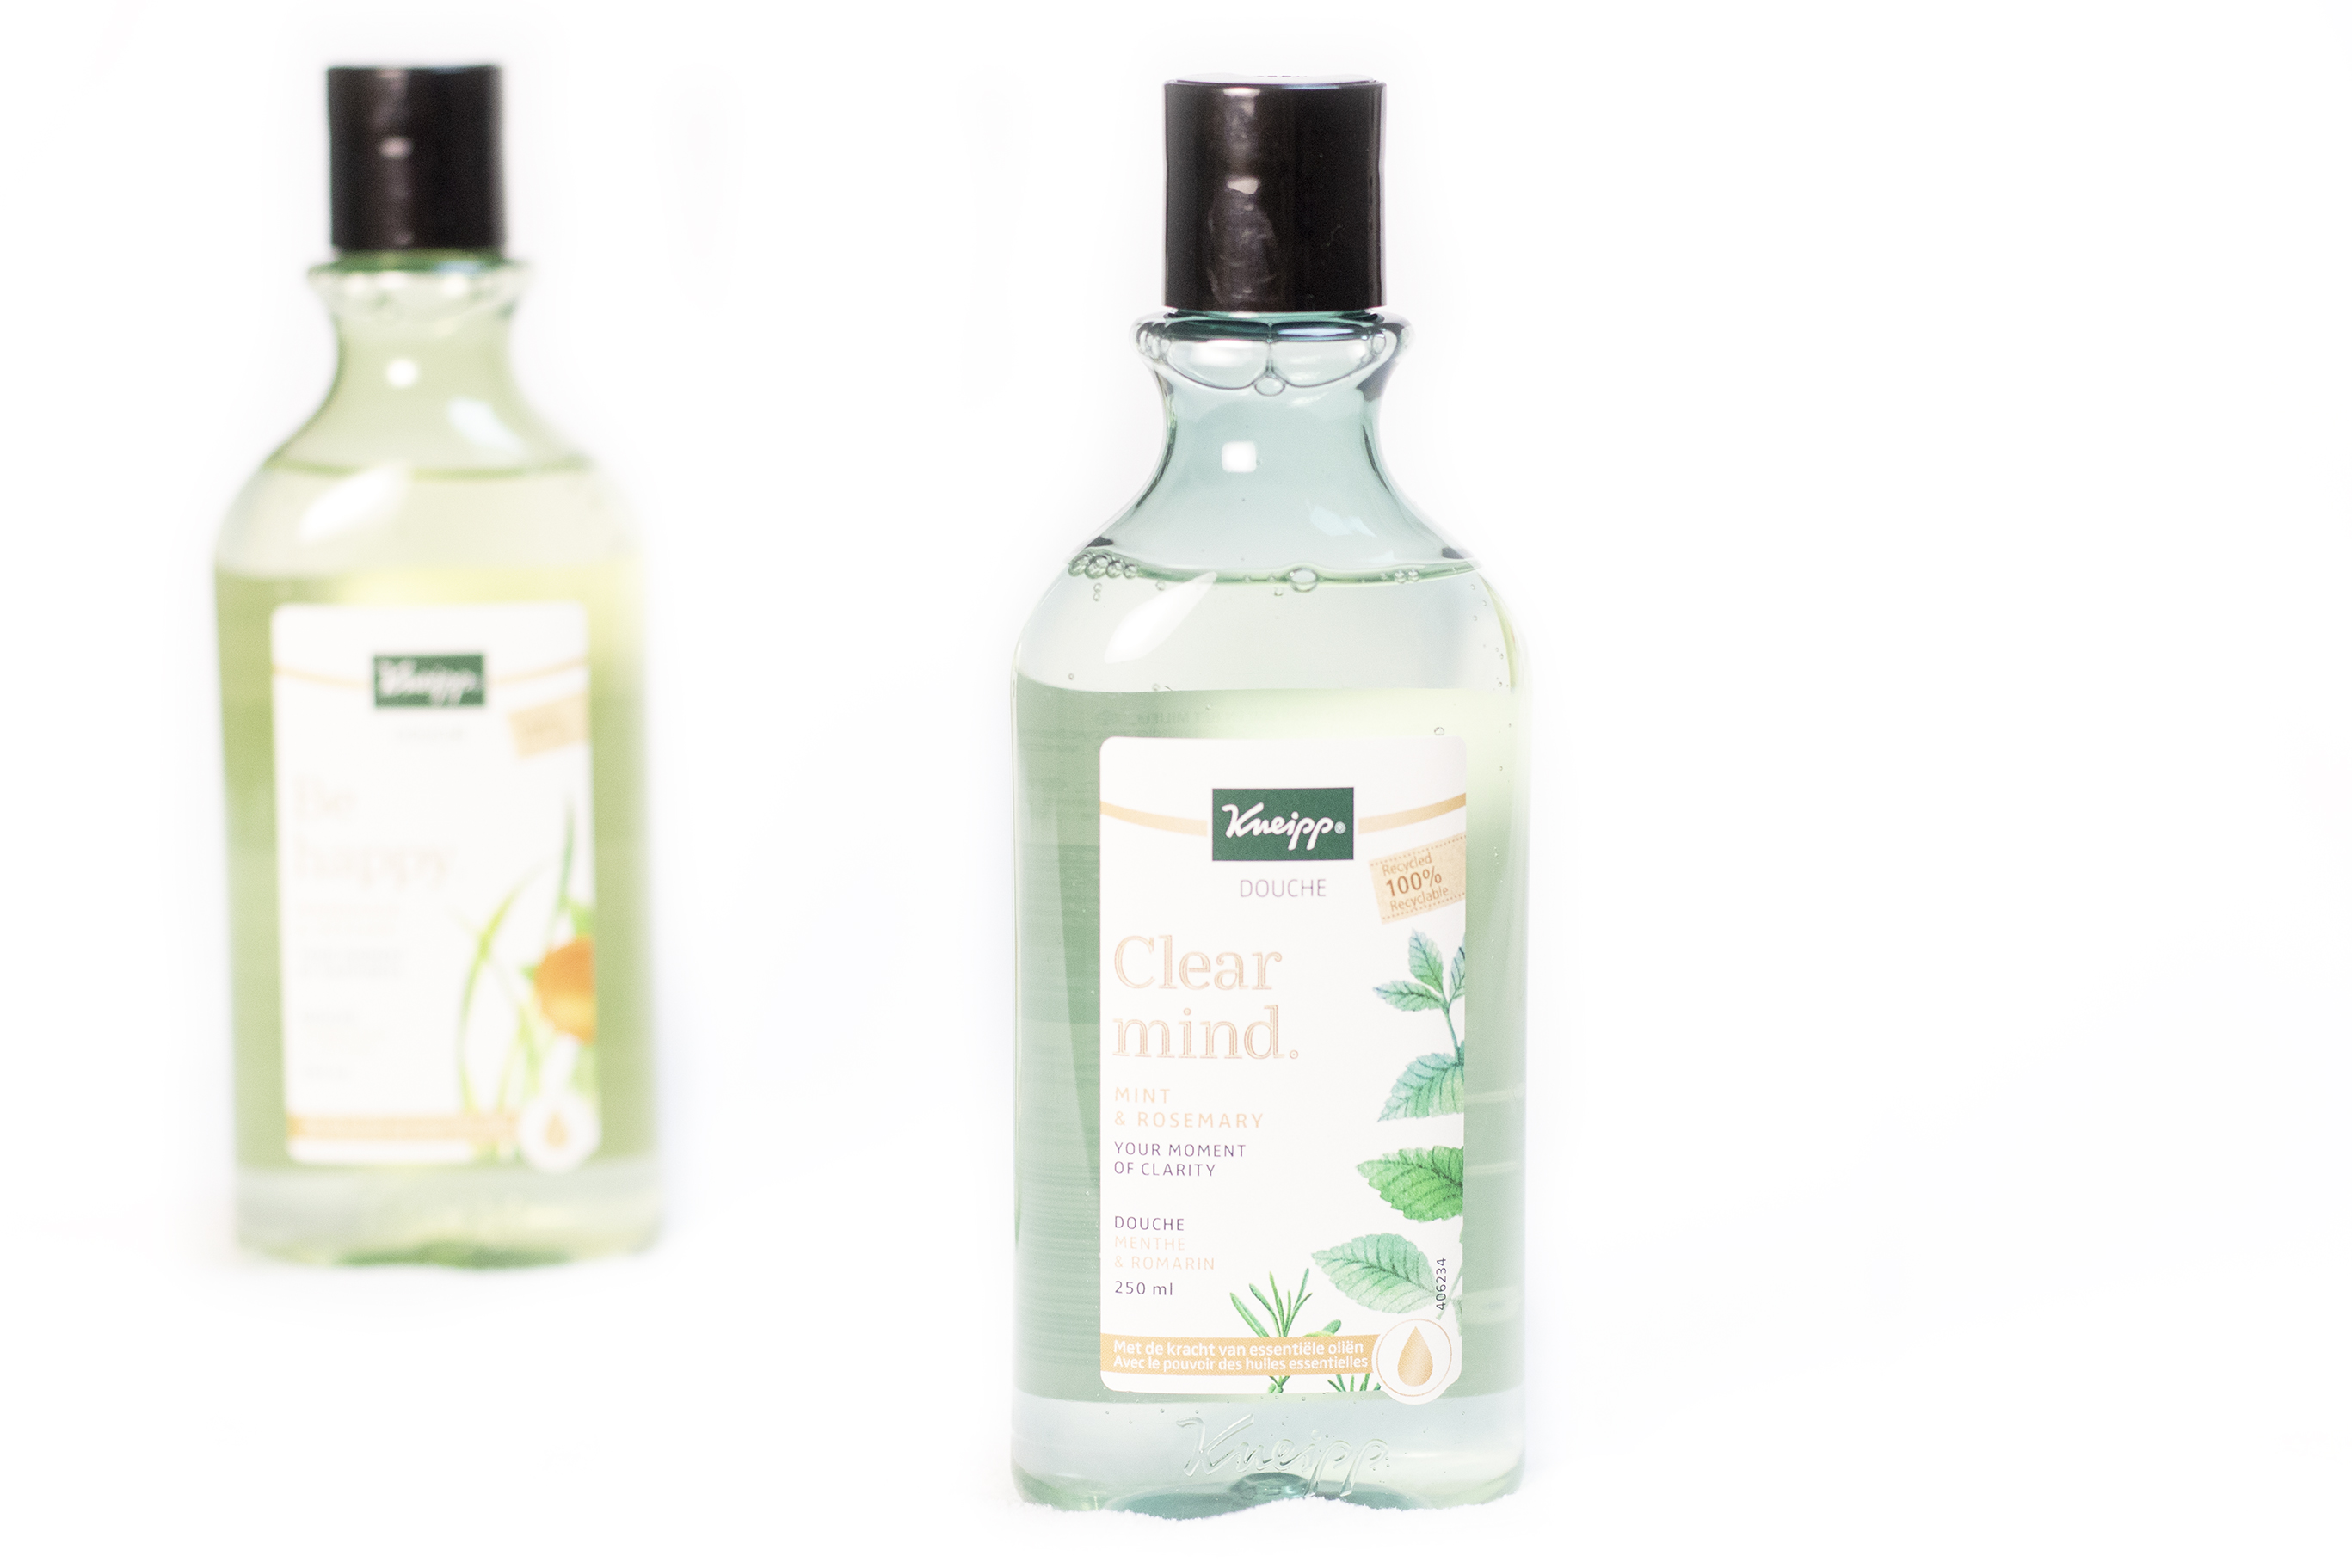 kneipp clear mind douche review